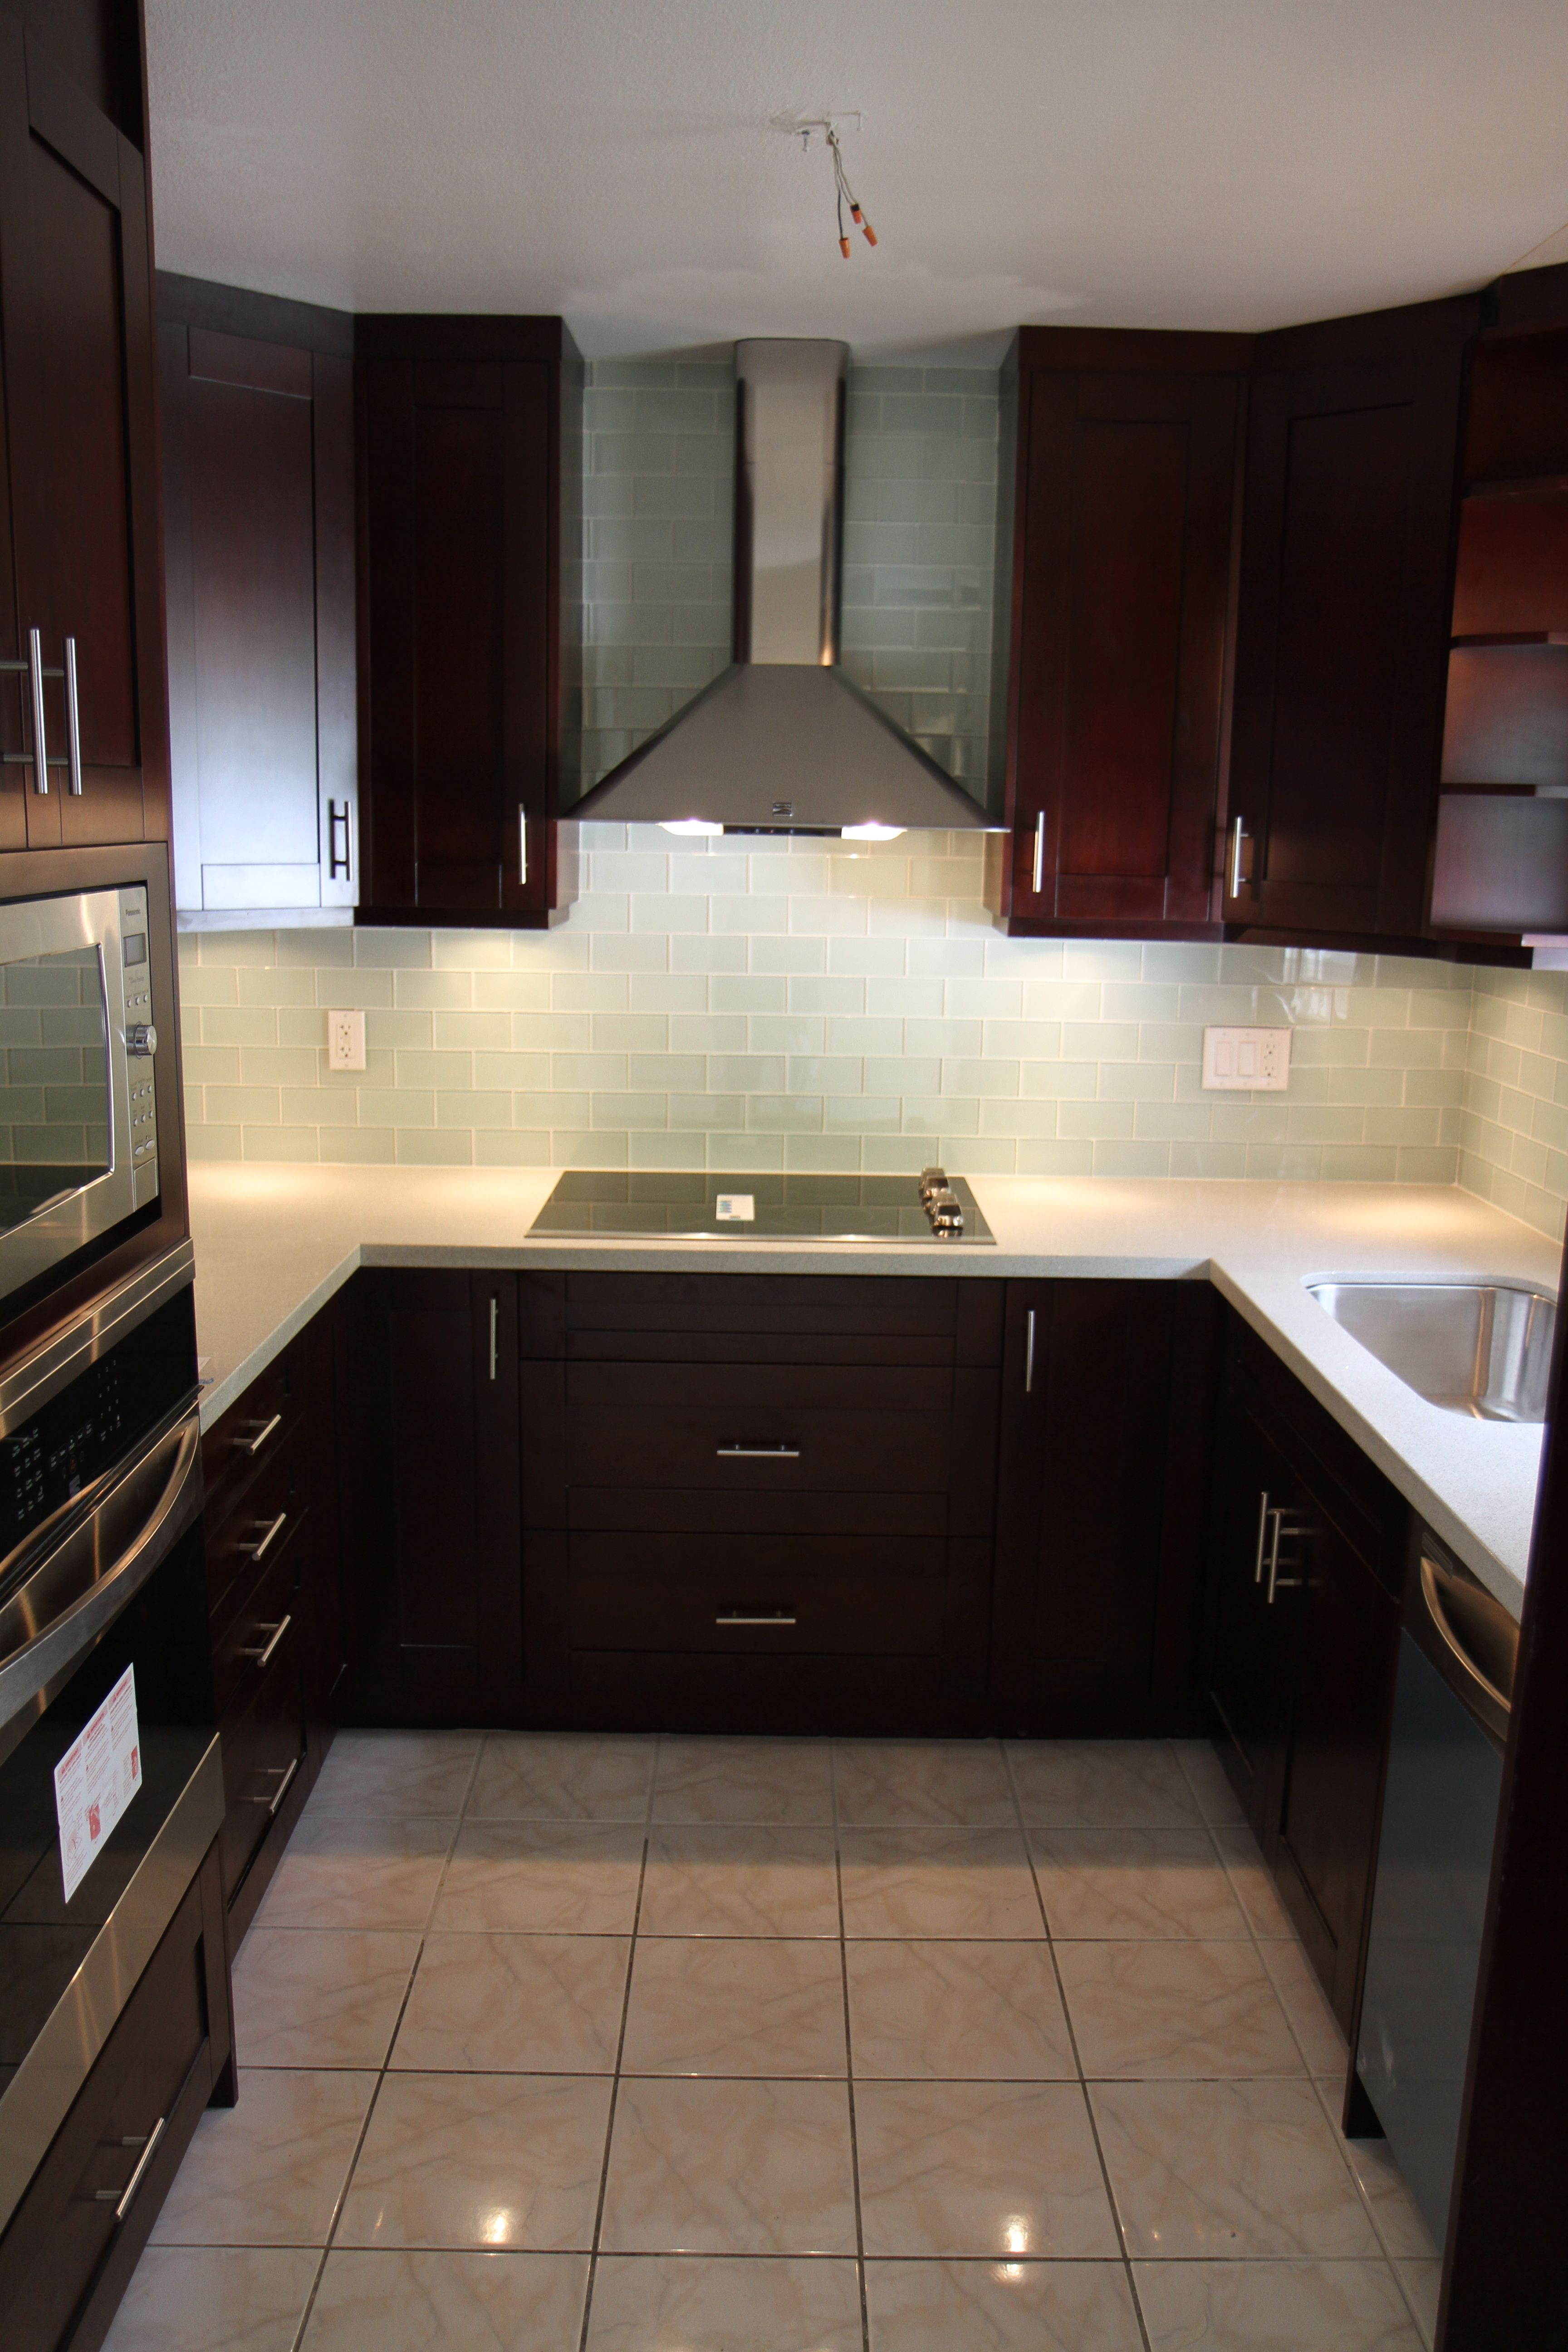 Pin By All Build Construction On All Build Construction Kitchen Remodels Kitchen Remodel Kitchen Kitchen Cabinets